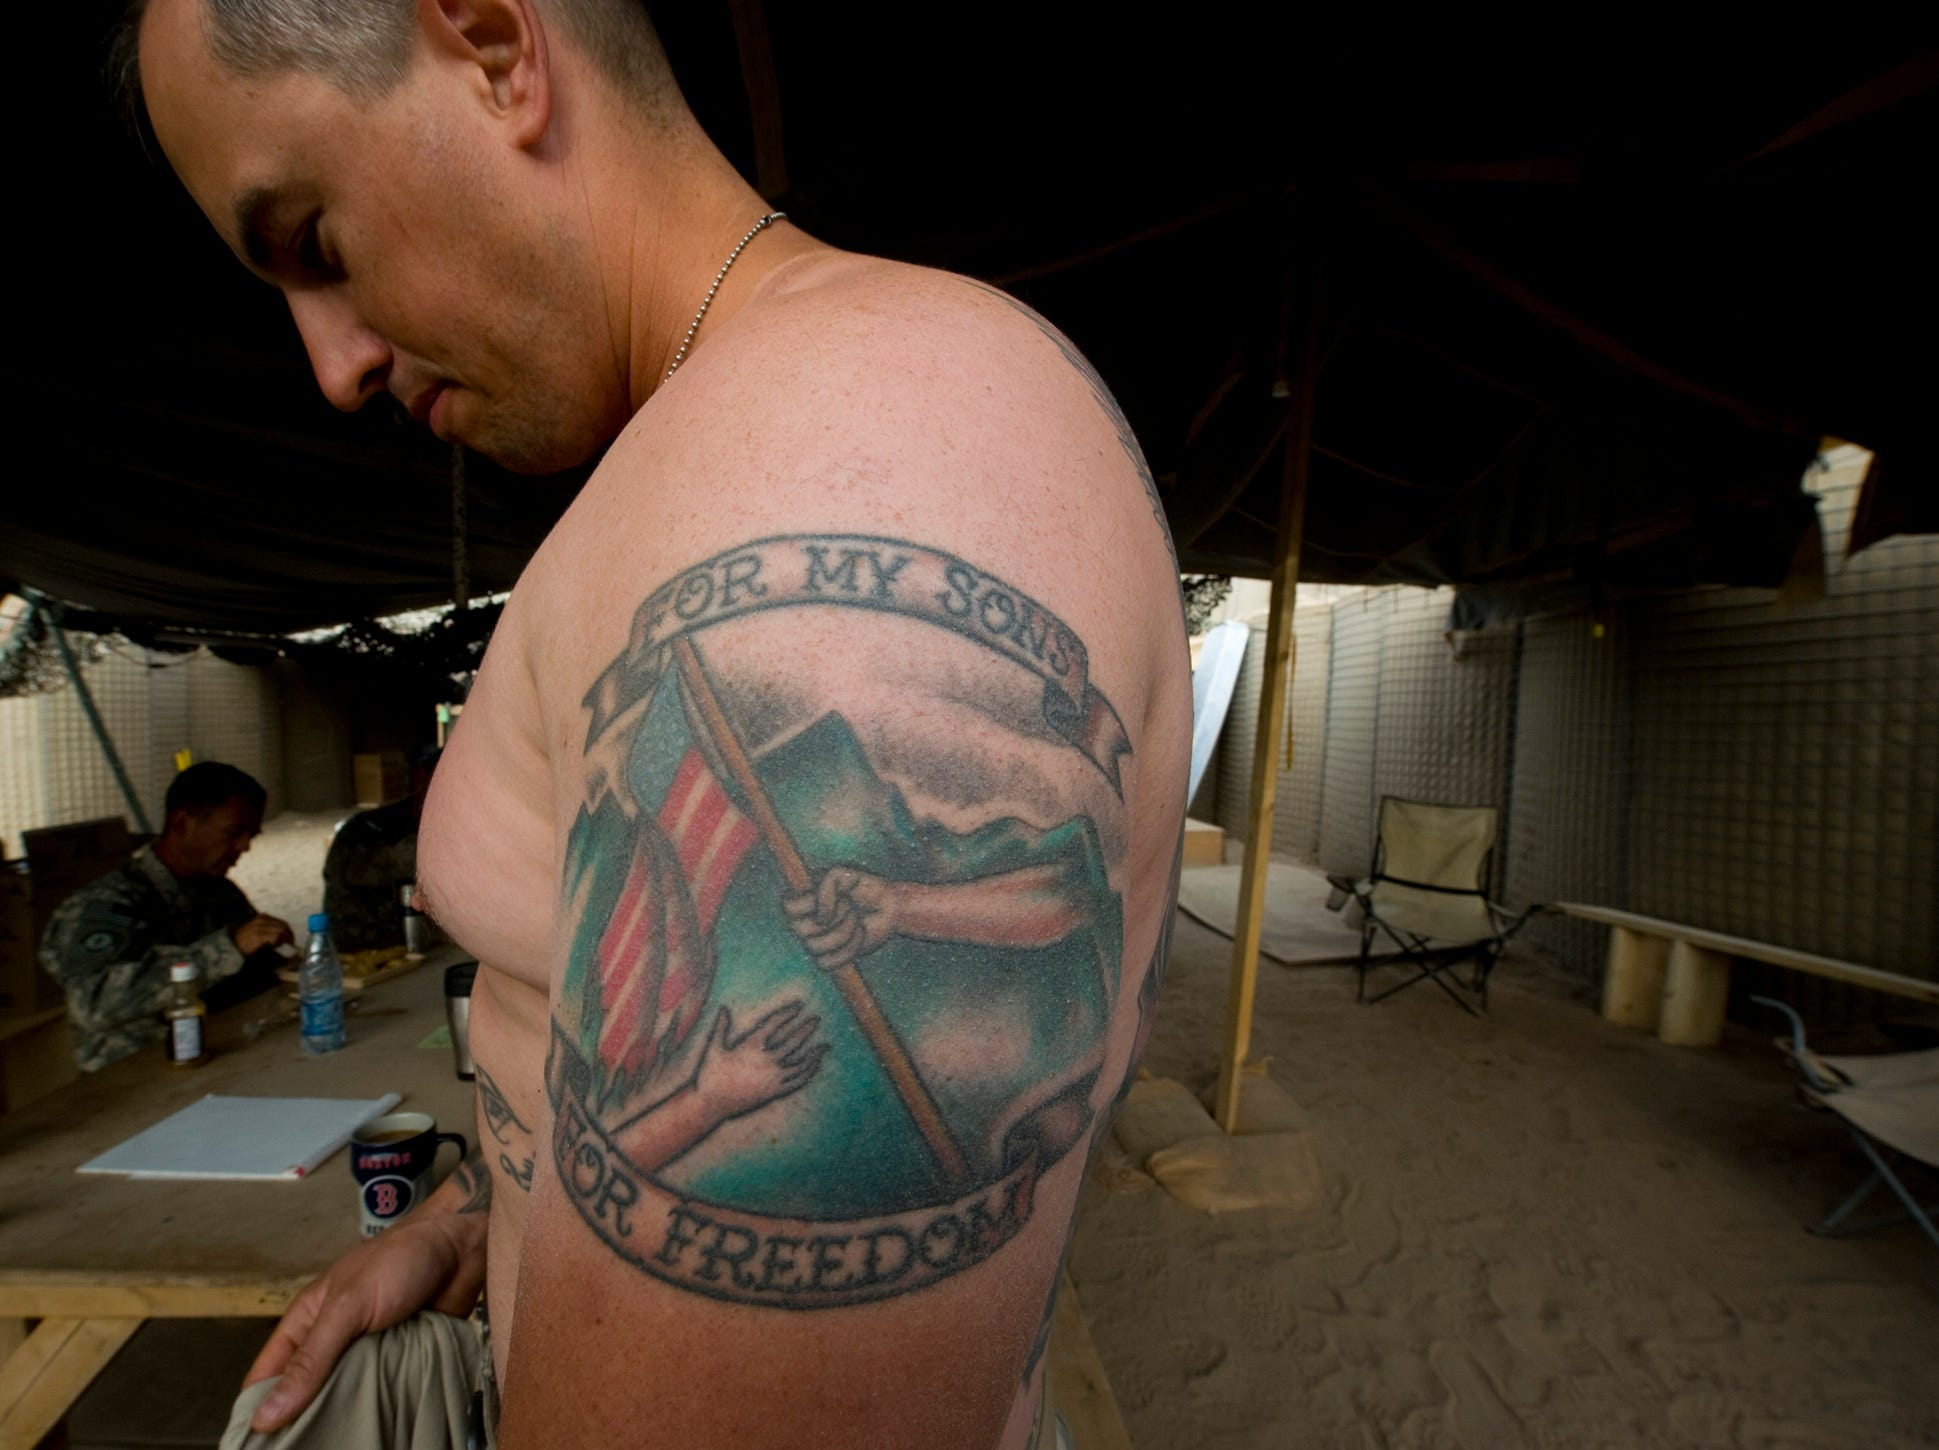 Vermont National Guard 1st Sgt. Eric Duncan of Northfield, Vt., displays tattoos expressing his fervor for serving at a new Afghan Combat Outpost in Rahman Keyhl in southern Paktia Province.